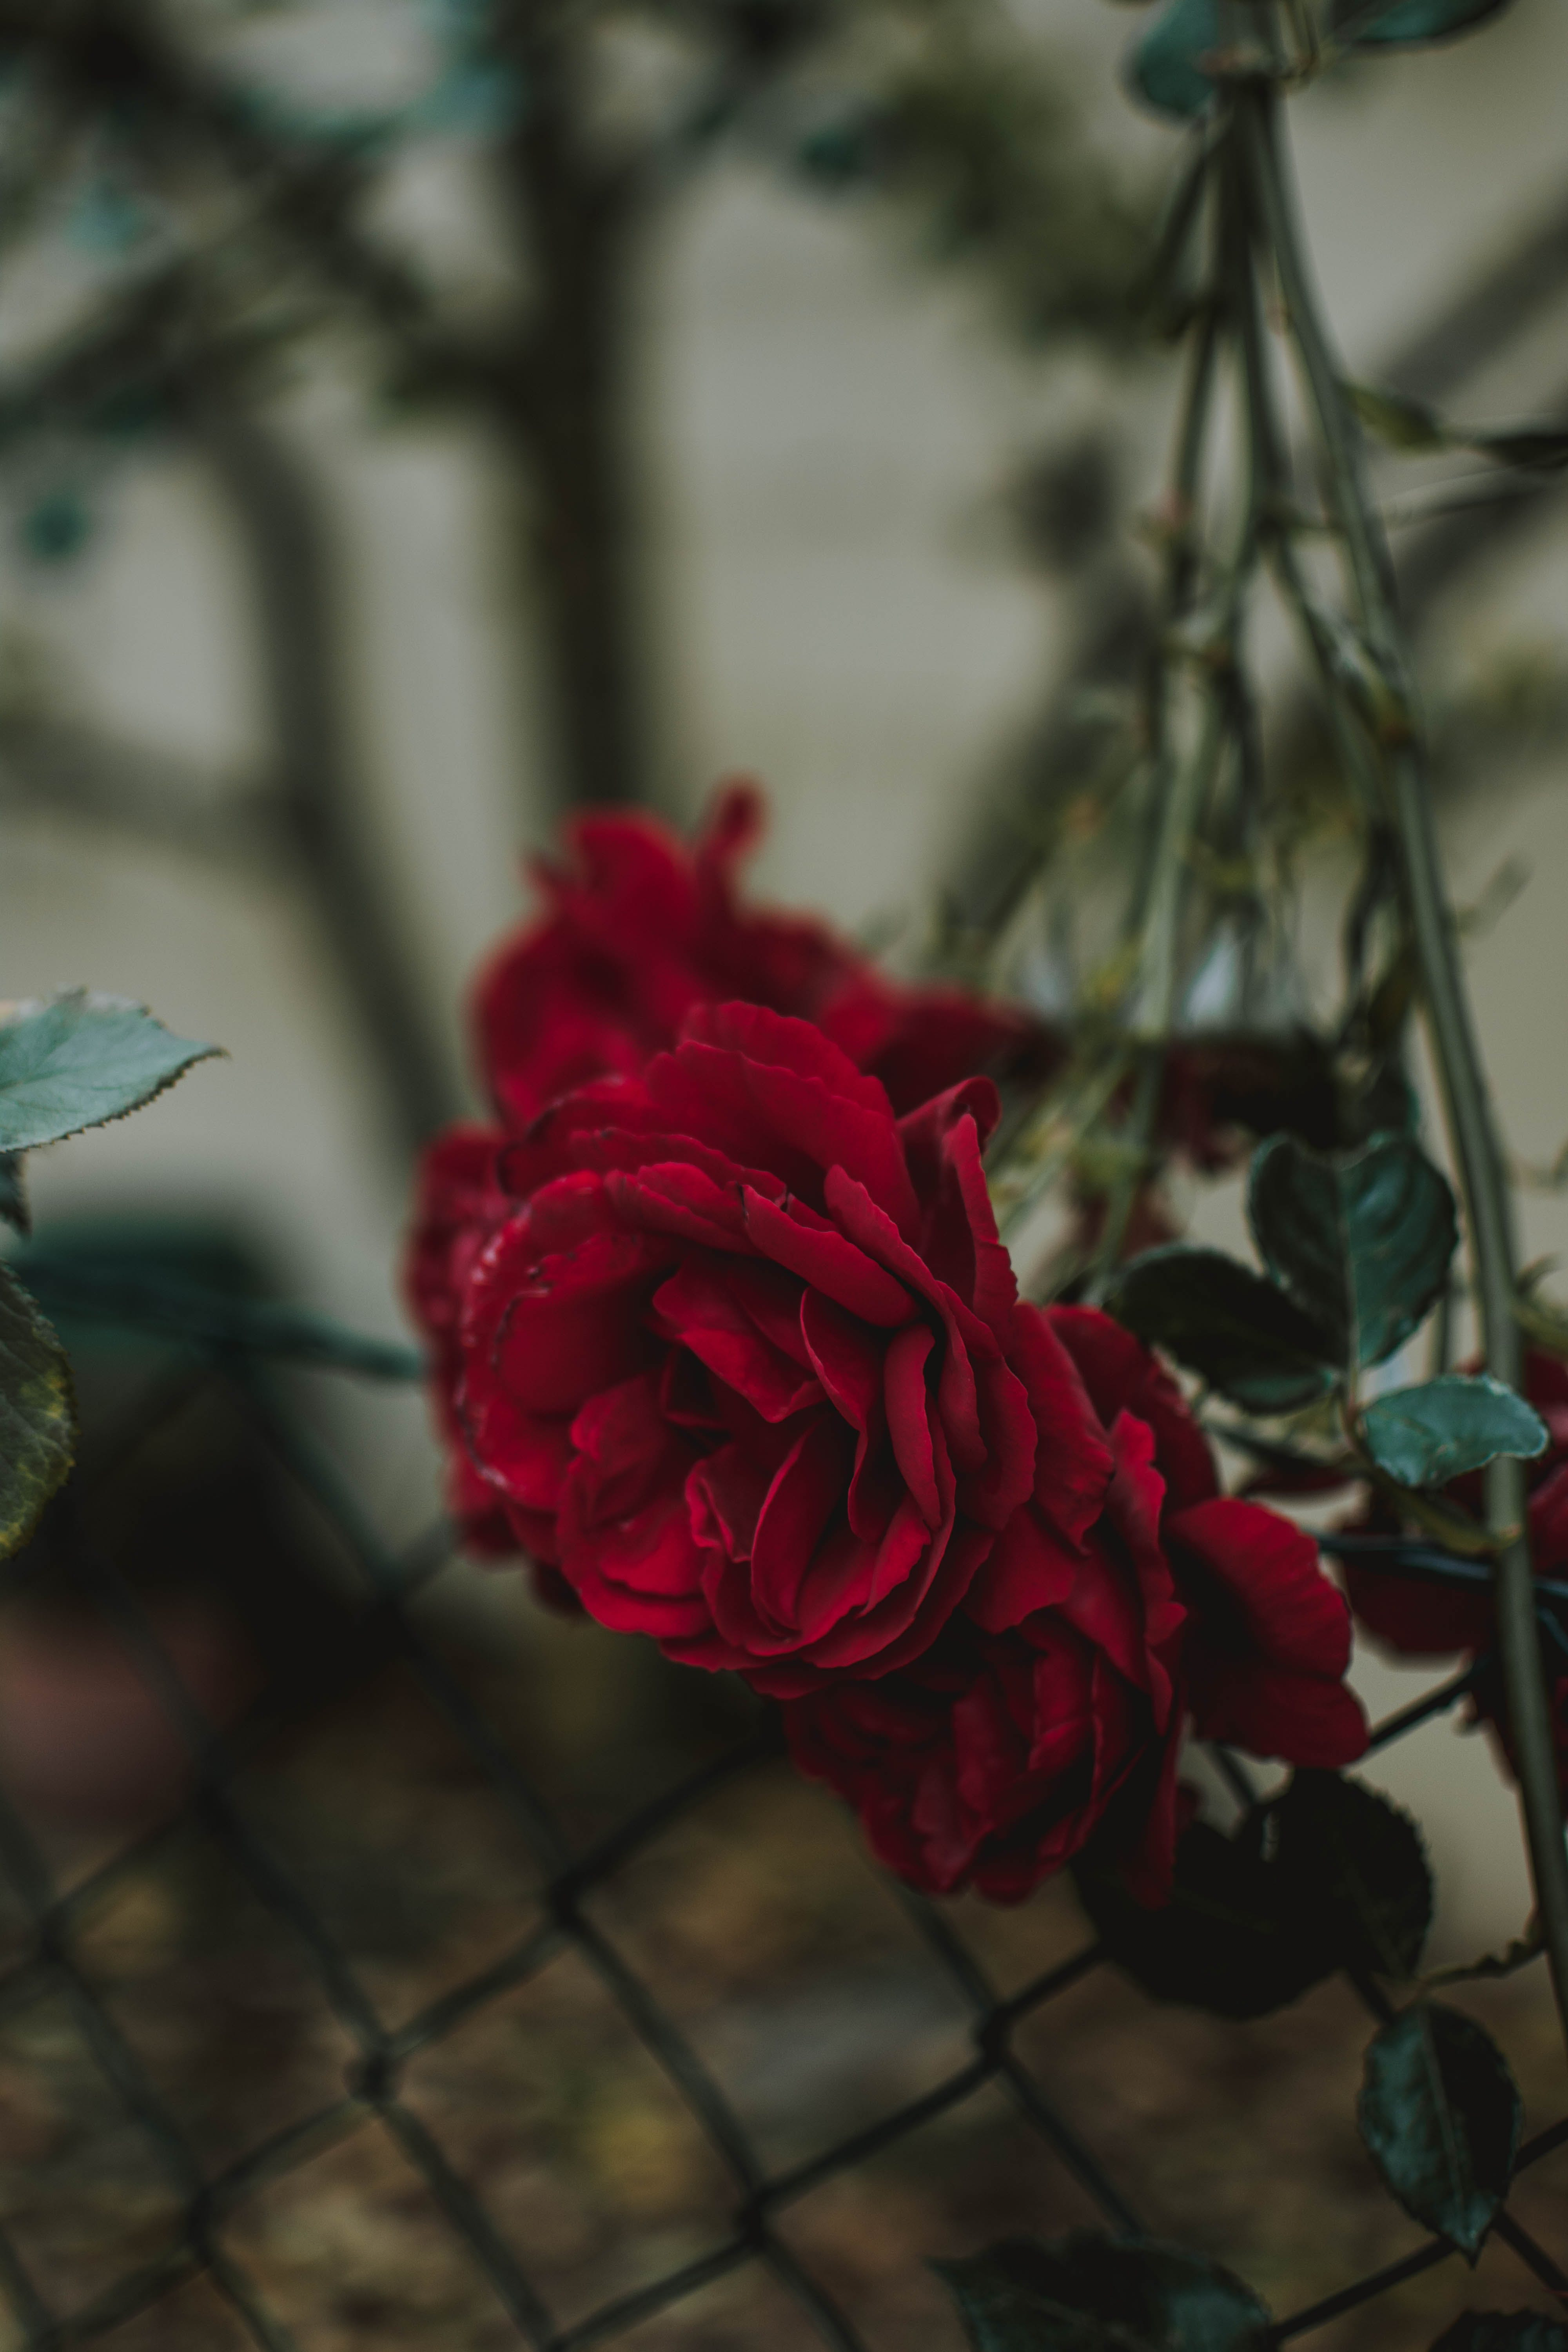 Red Rose In Tilt Shift Lens Photography